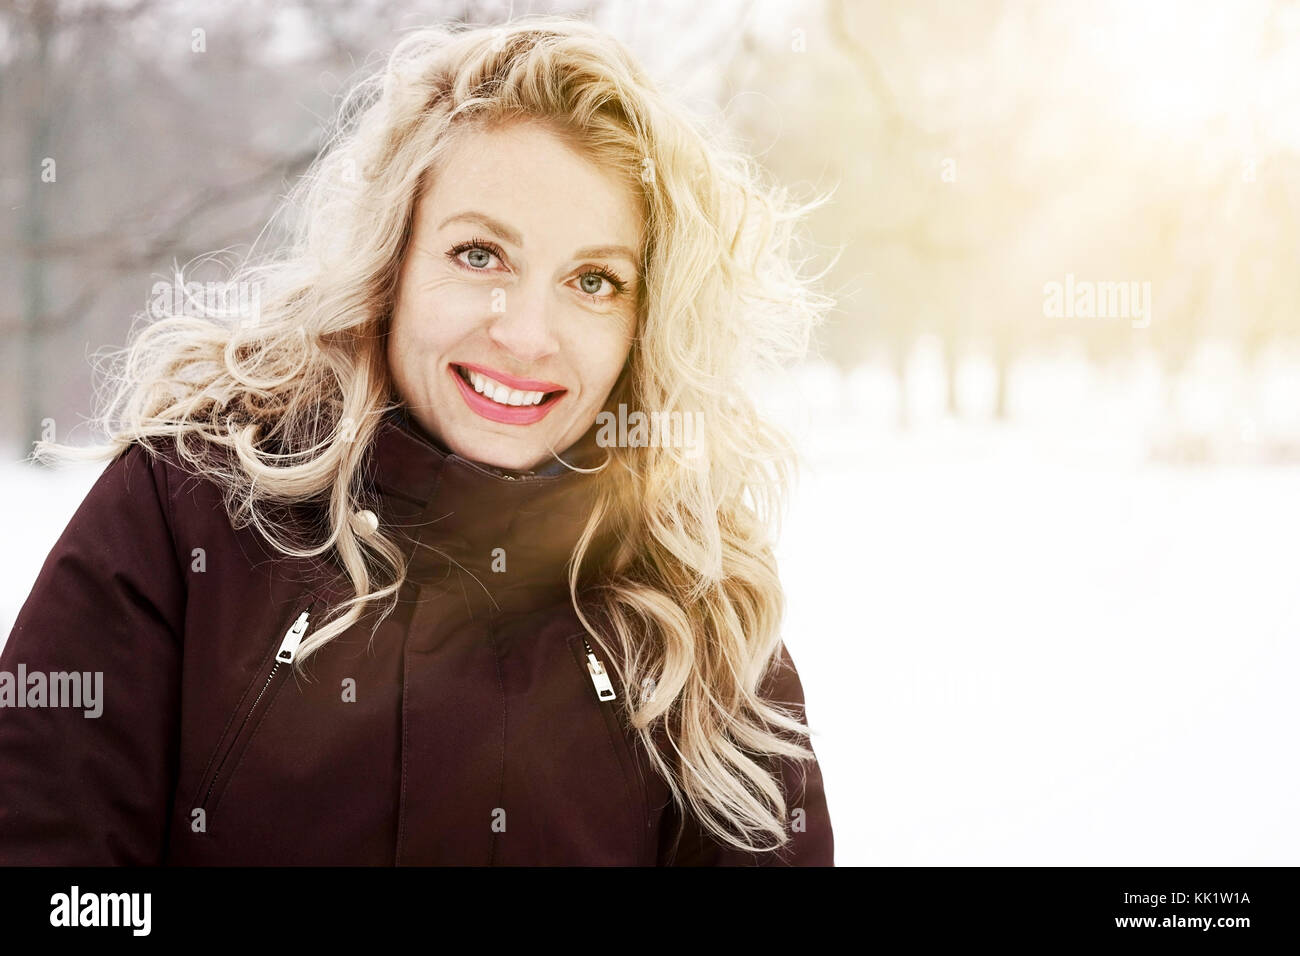 blond woman in winter landscape with sun flare - Stock Image